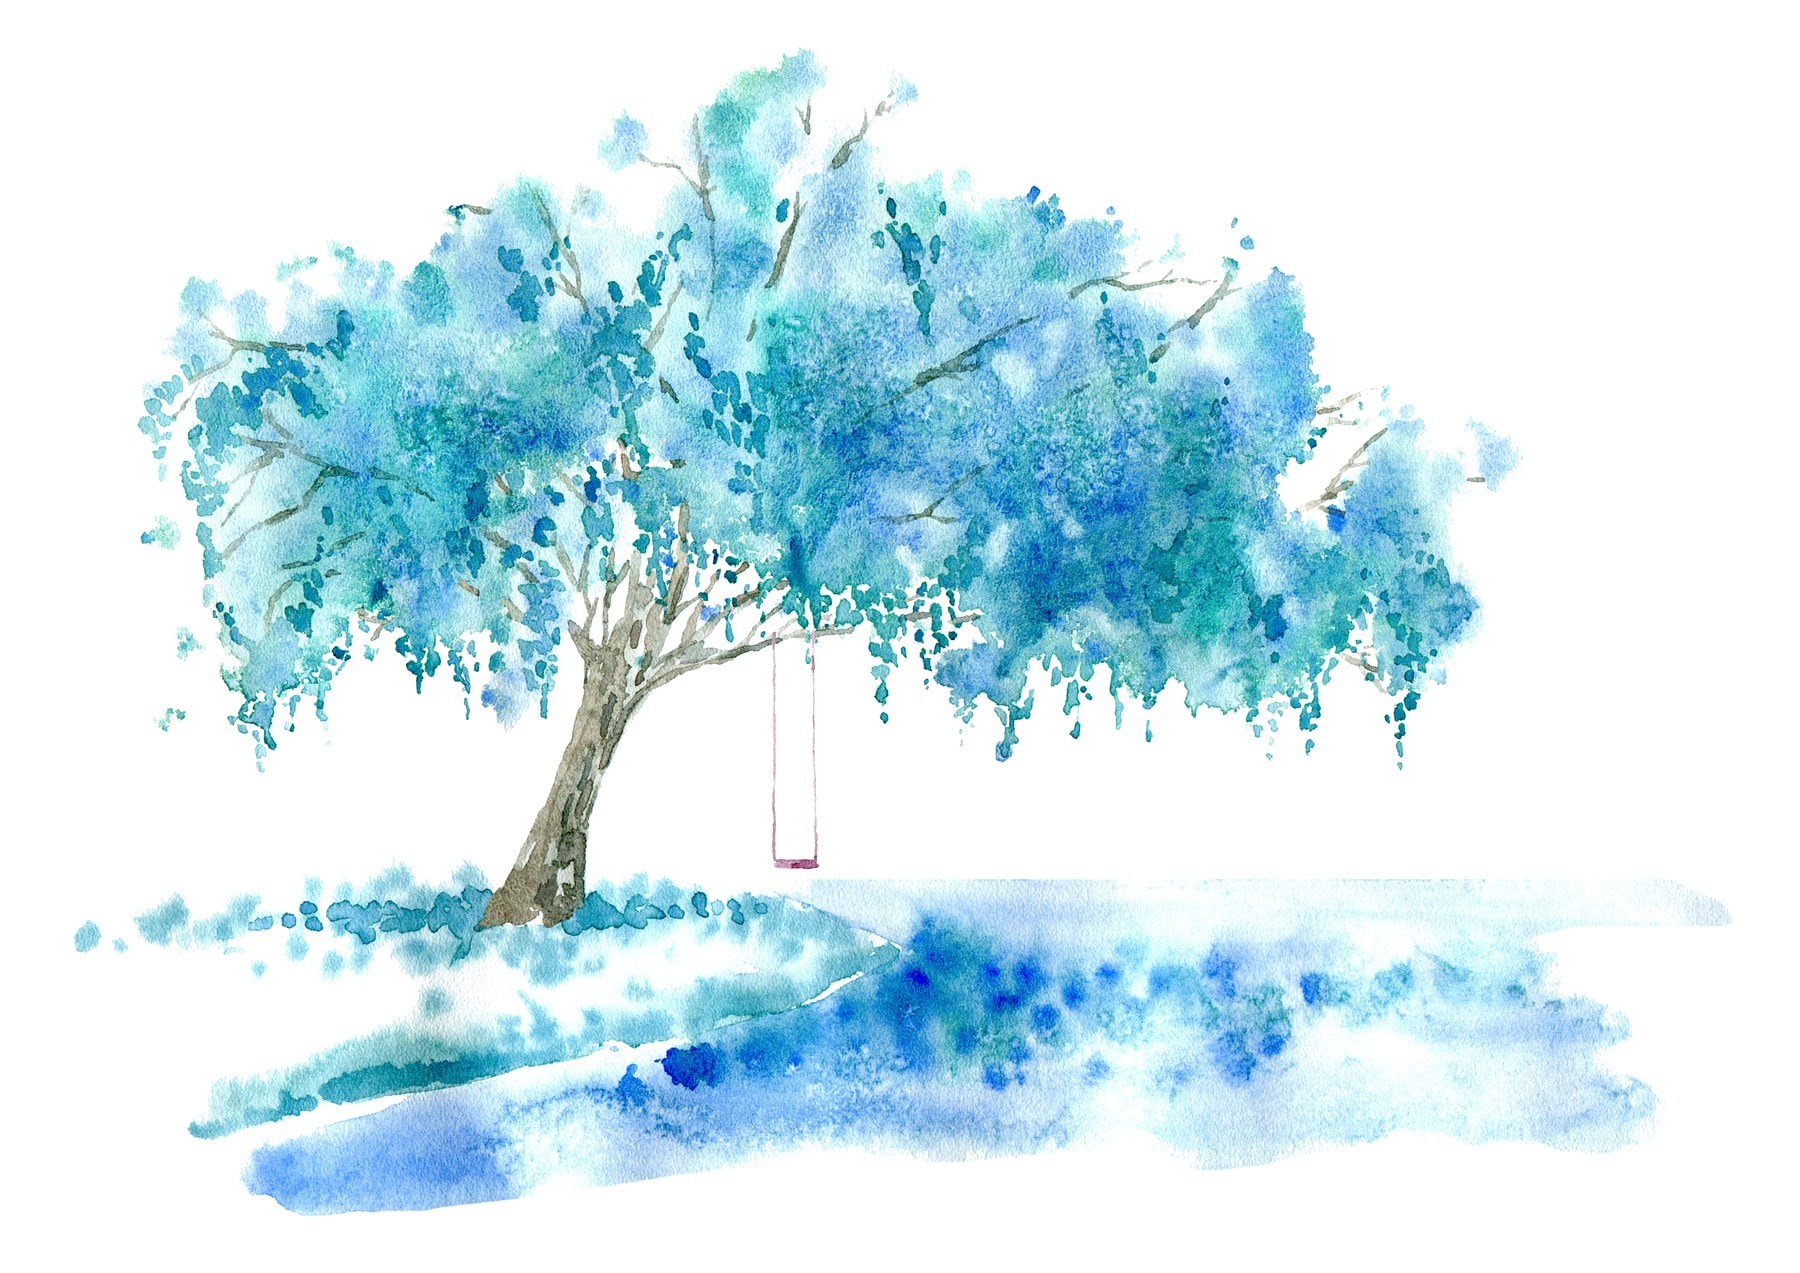 Weeping willow on the lake and swing. Blue tree. Watercolor hand drawn illustration.